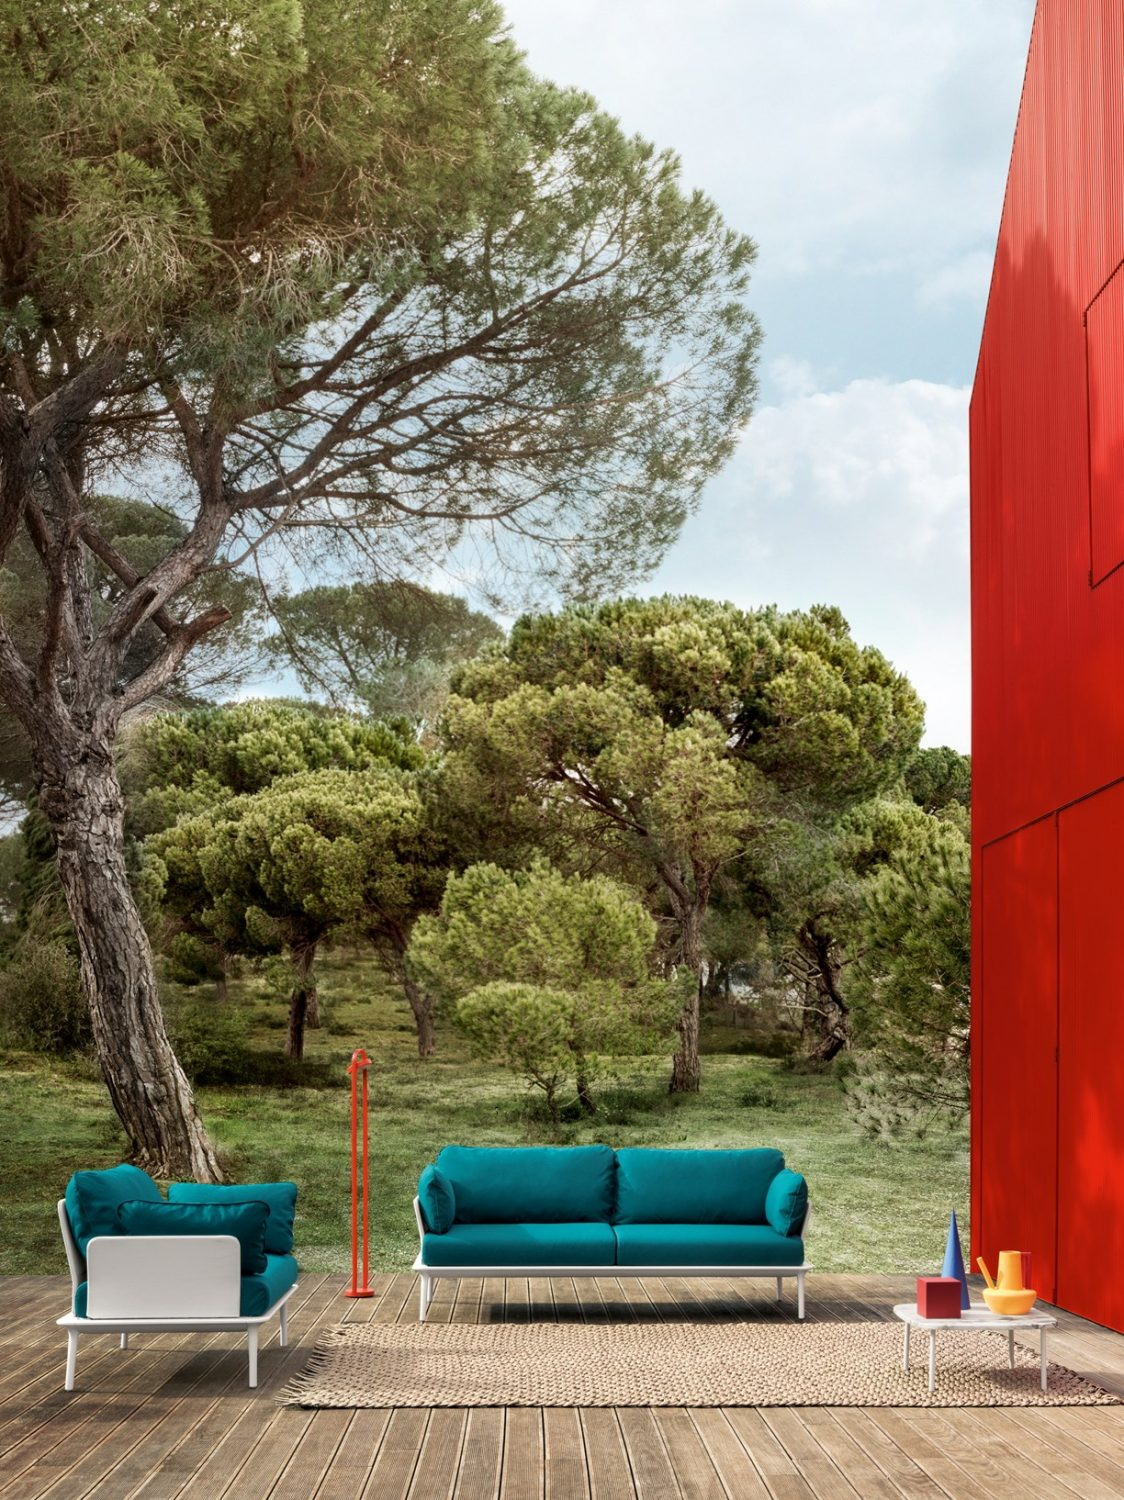 Fall In Love With Pedrali's New Indoor And Outdoor Collection pedrali Fall In Love With Pedrali's New Indoor And Outdoor Collection fall love pedralis new indoor outdoor collection 3 scaled